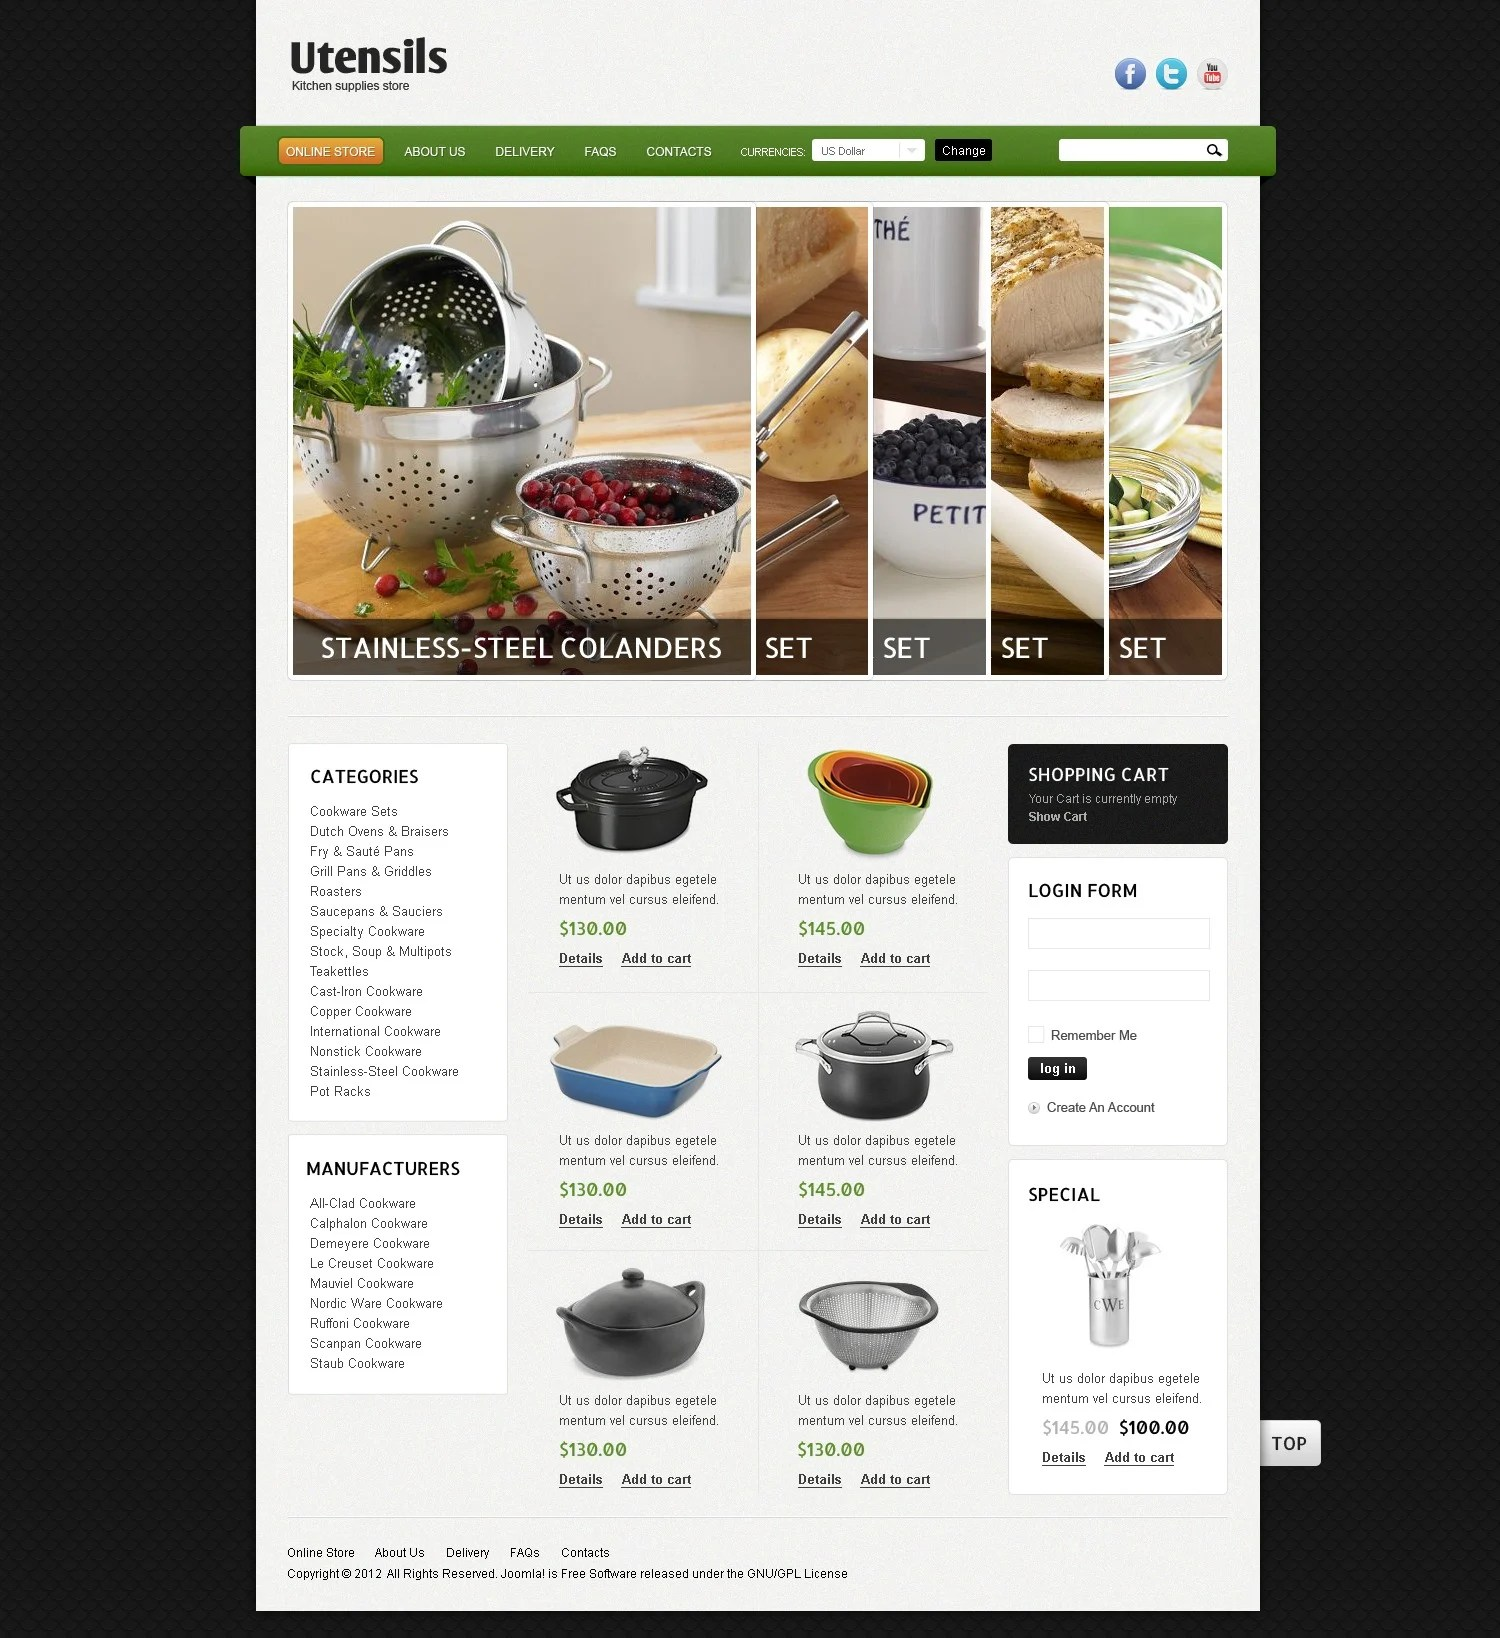 Sjablonen Keuken Kitchen Utensils Virtuemart Template 39084